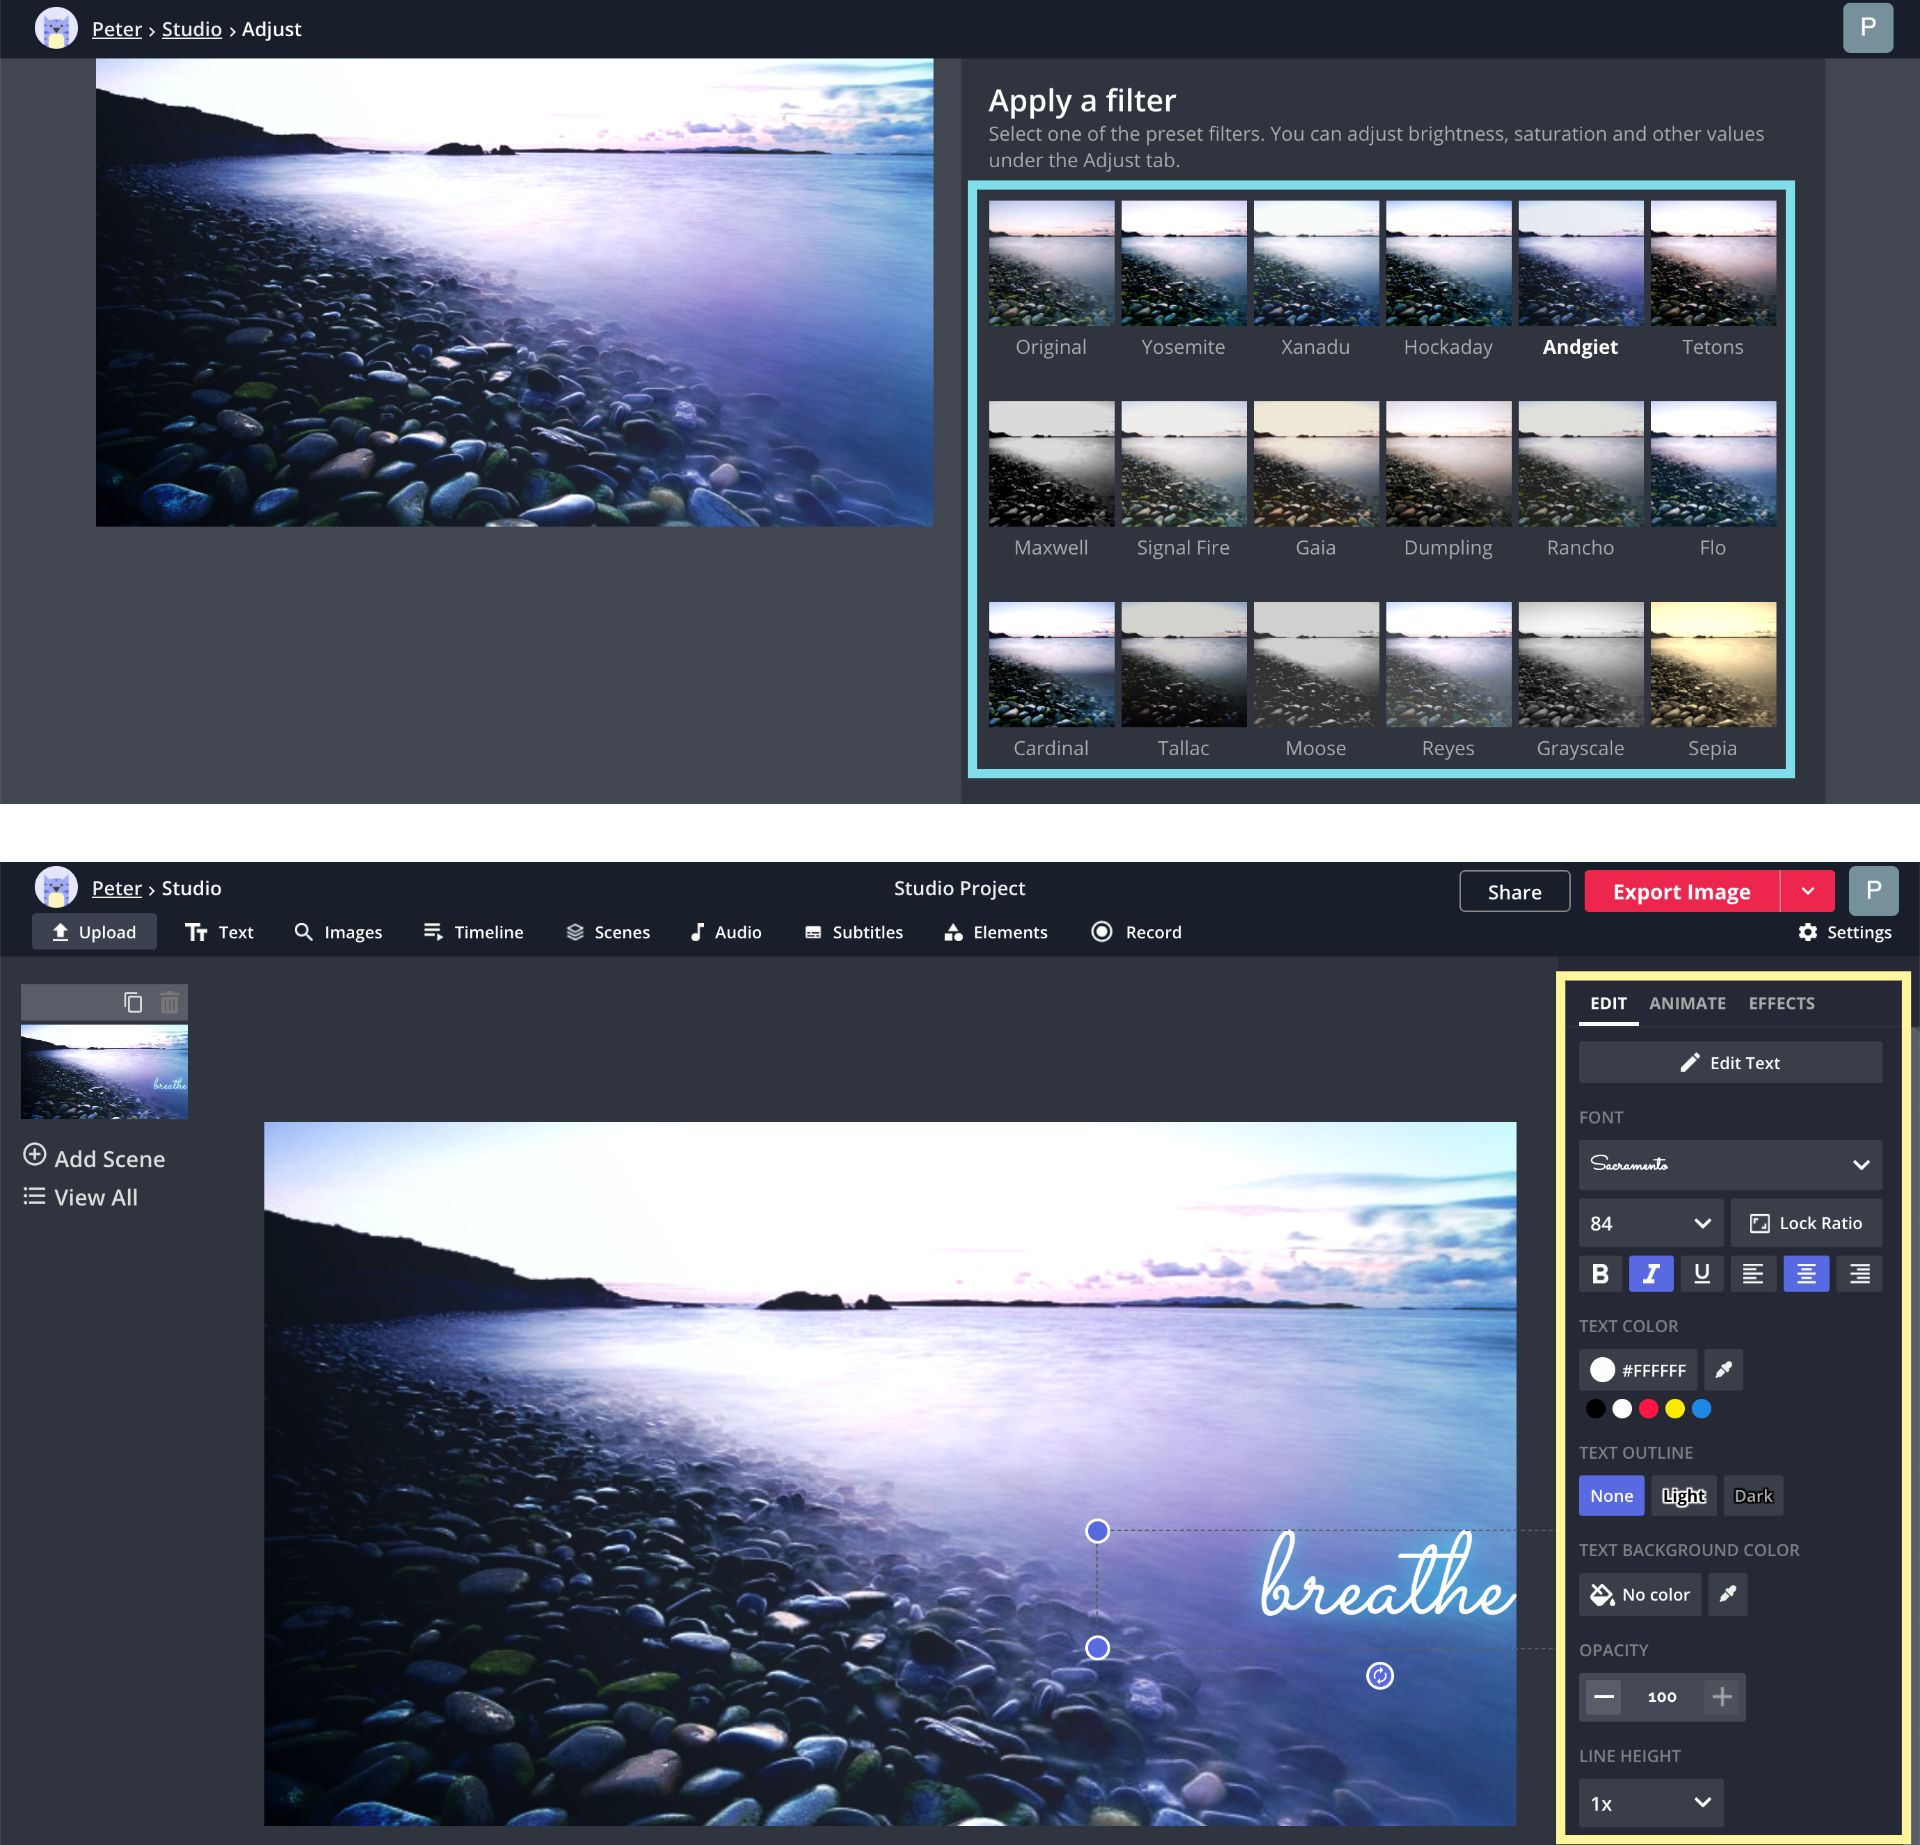 Screenshots showing how to add filters and custom text to a wallpaper image in the Kapwing Studio.